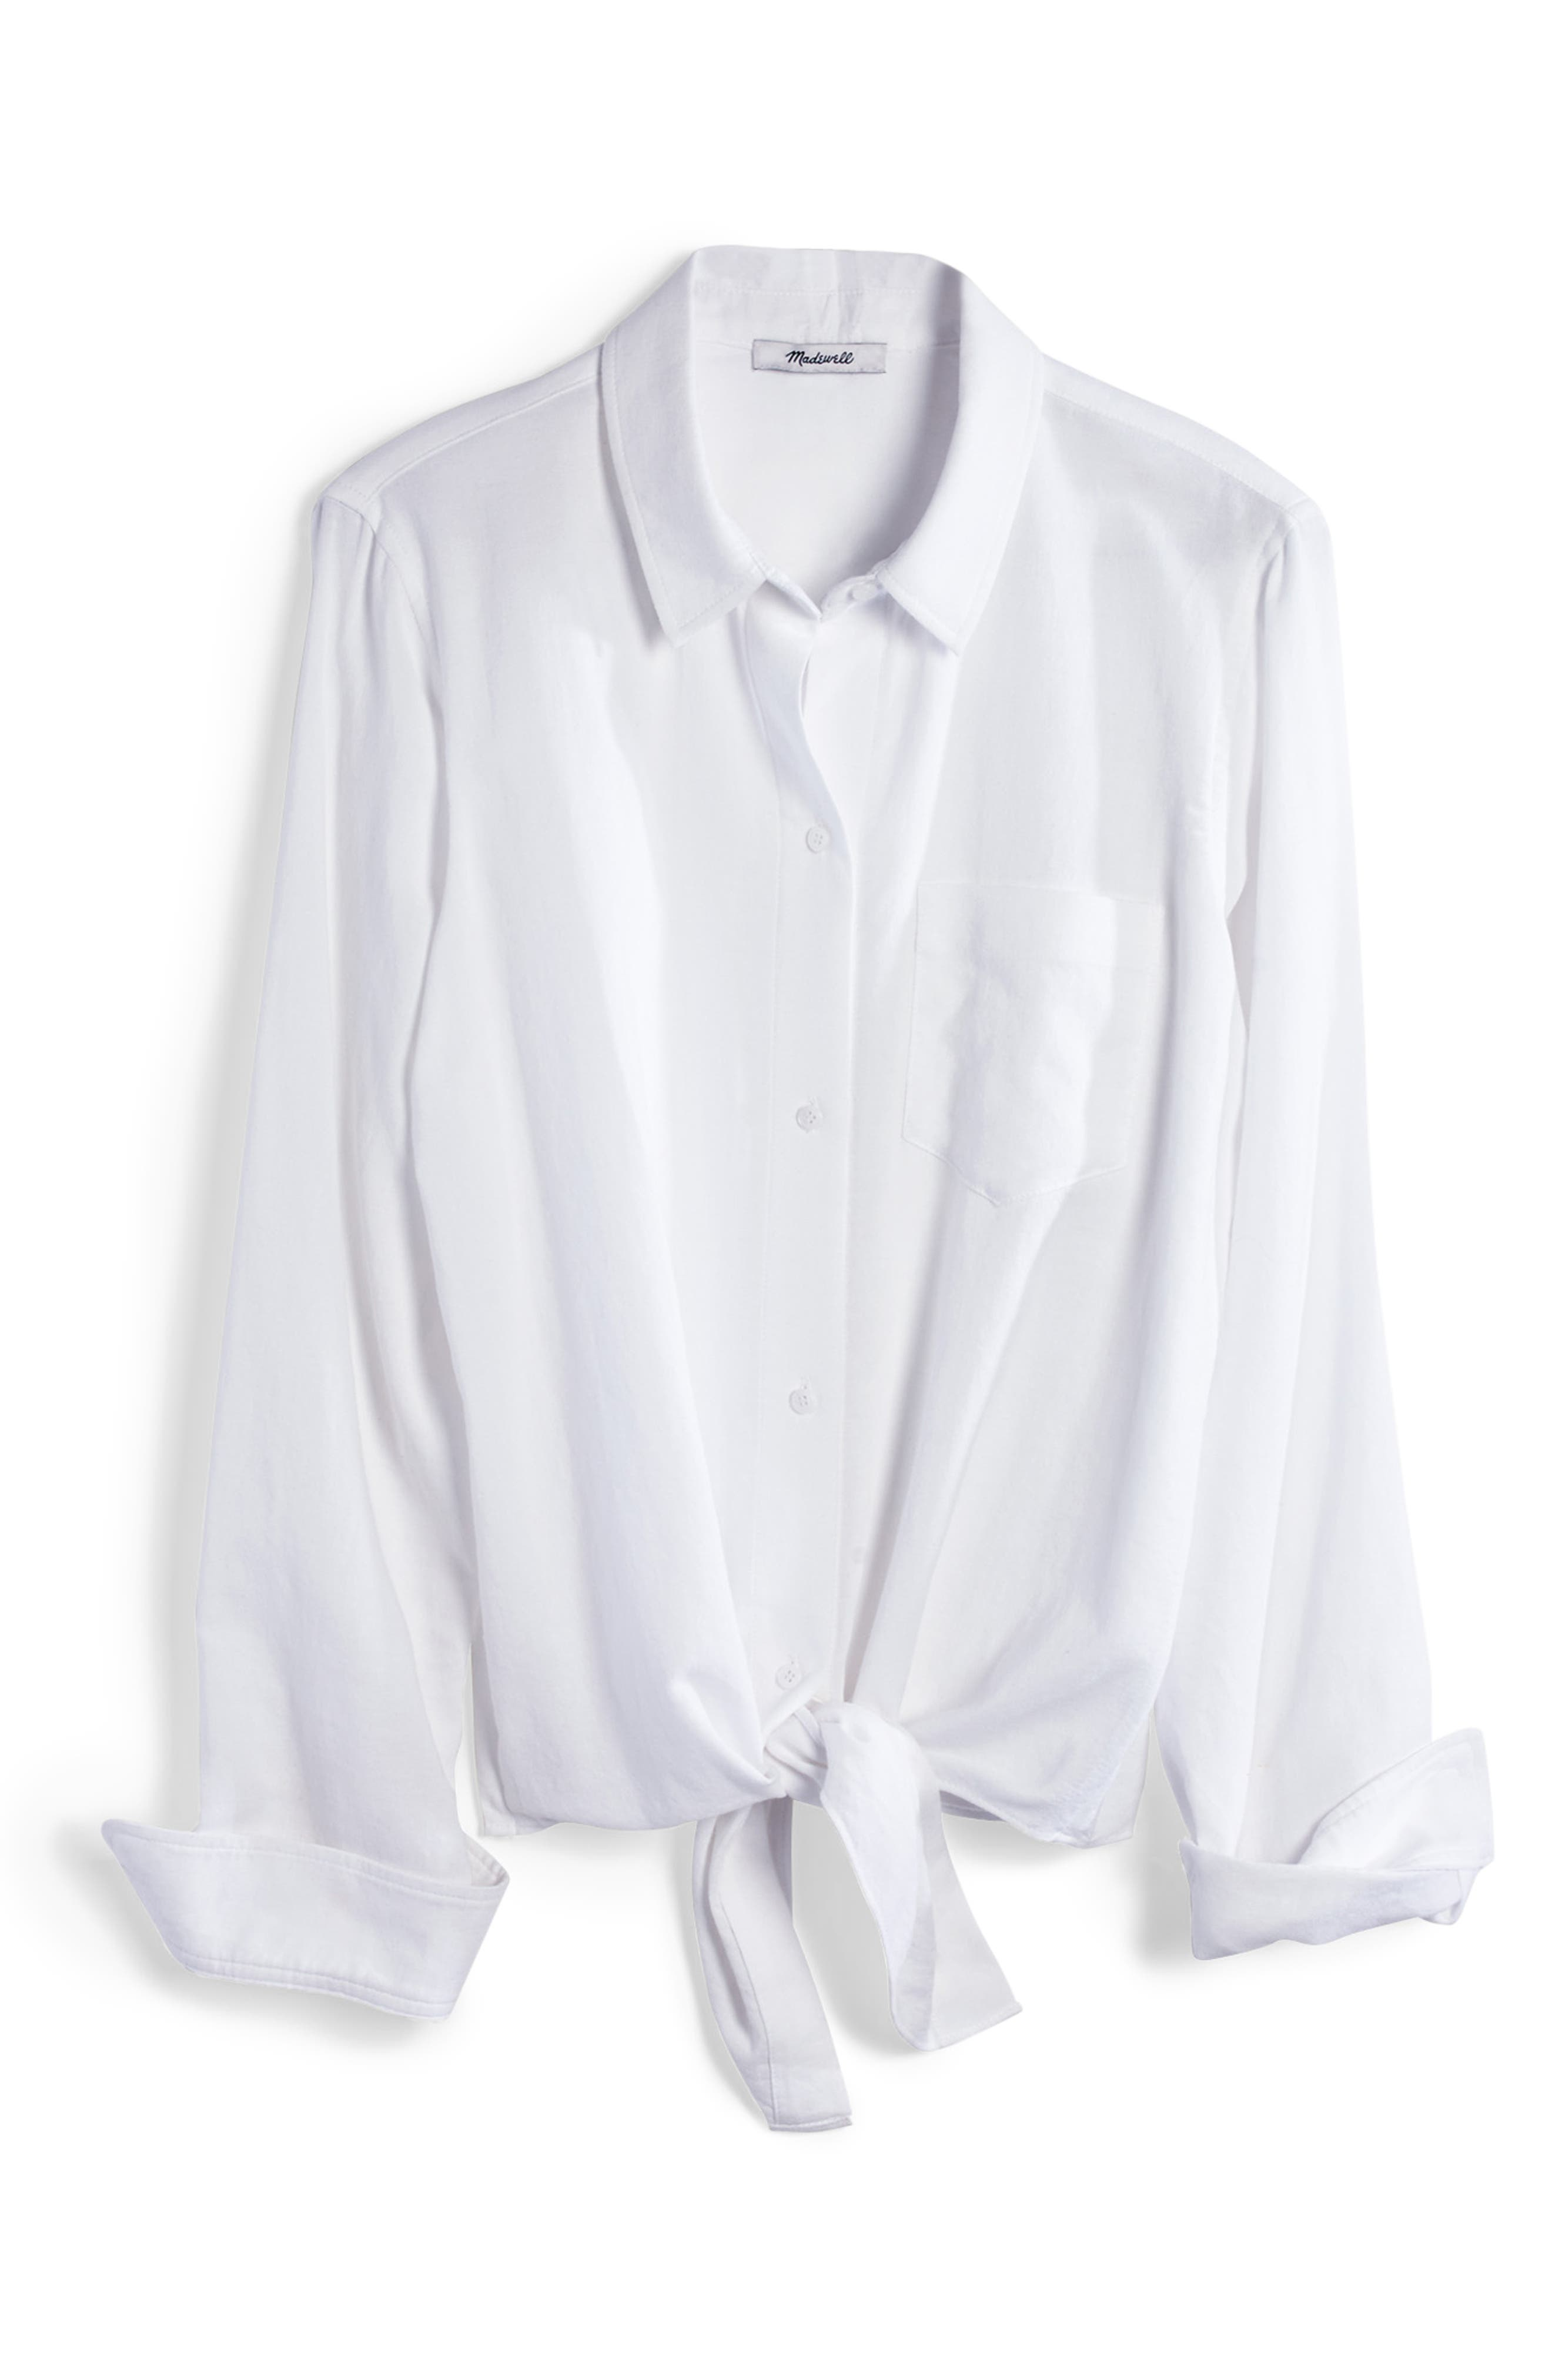 MADEWELL, Tie Front Shirt, Alternate thumbnail 4, color, EYELET WHITE